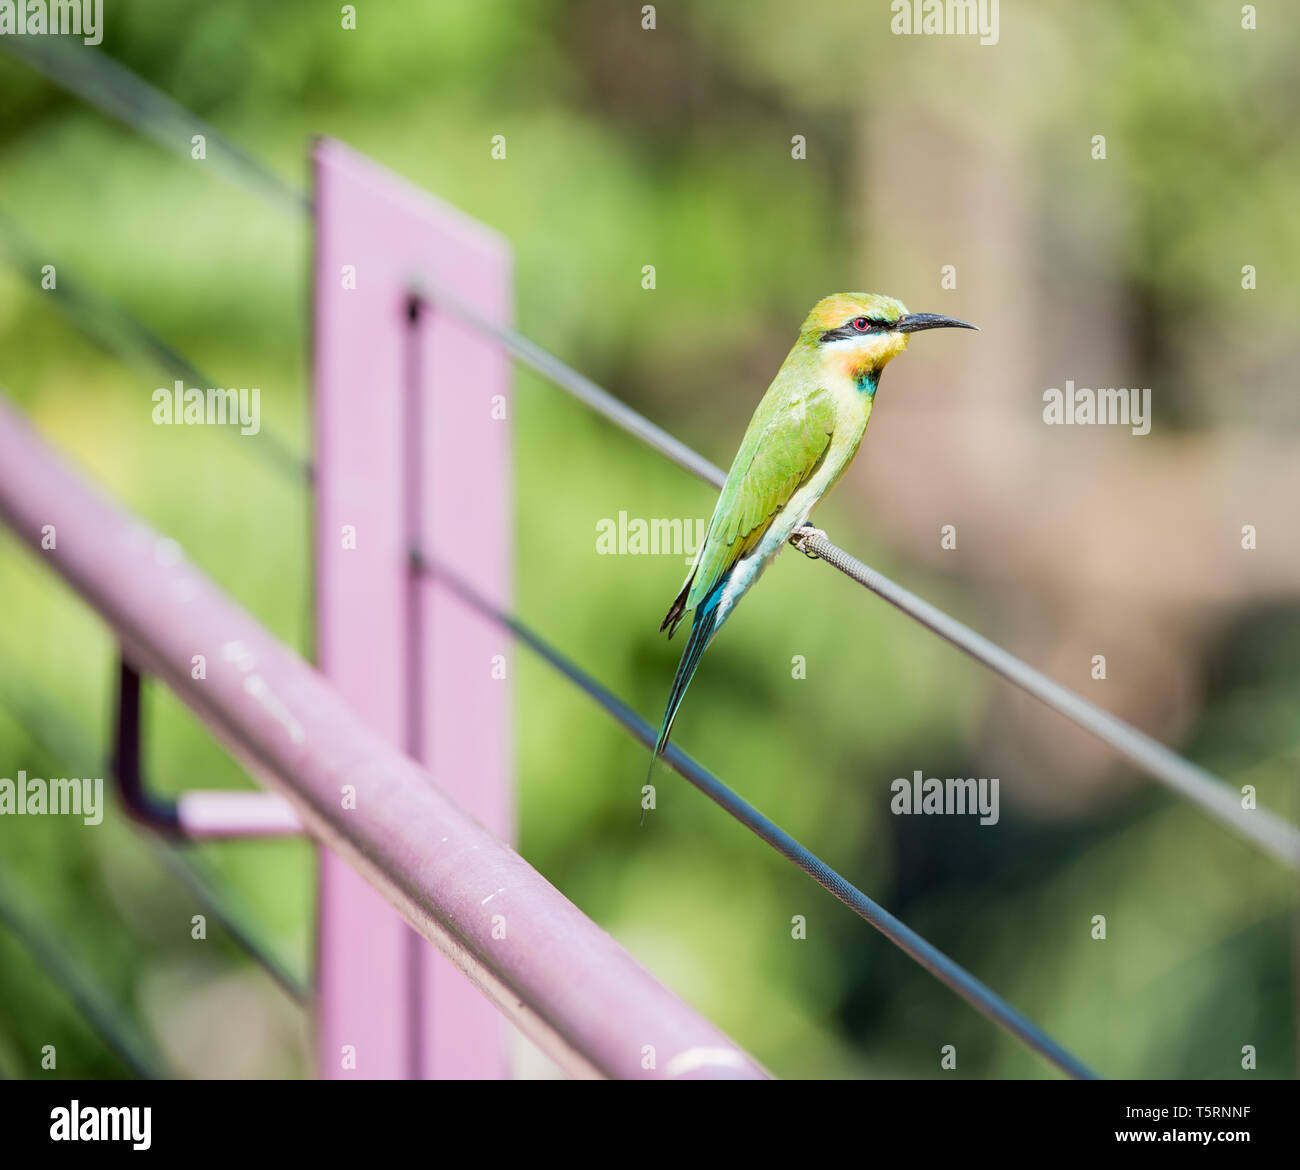 Rainbow bee-eater with colorful feathers perched in outdoor setting in tropical Darwin, Australia - Stock Image